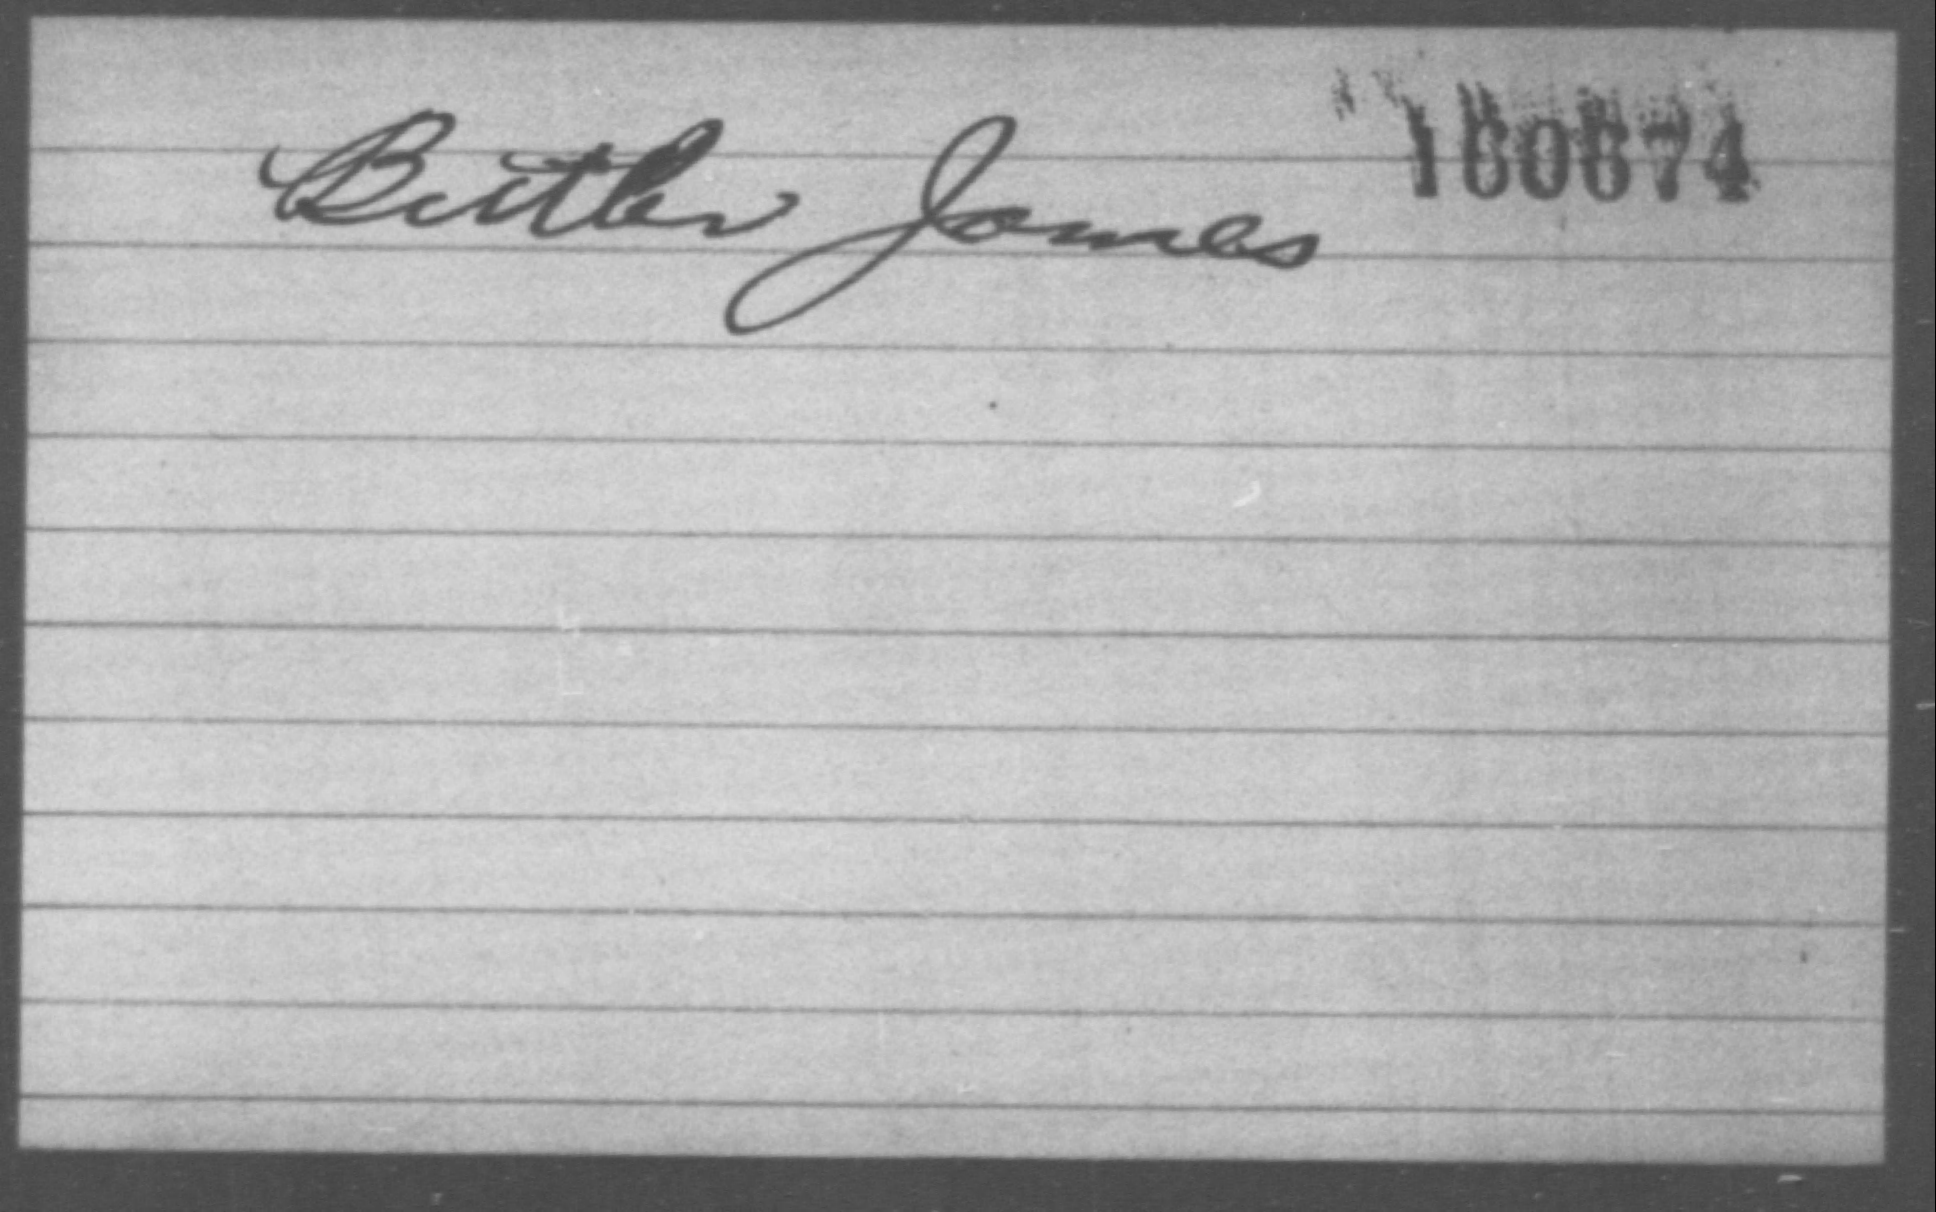 Butler, James - Born: [BLANK], Naturalized: [BLANK]